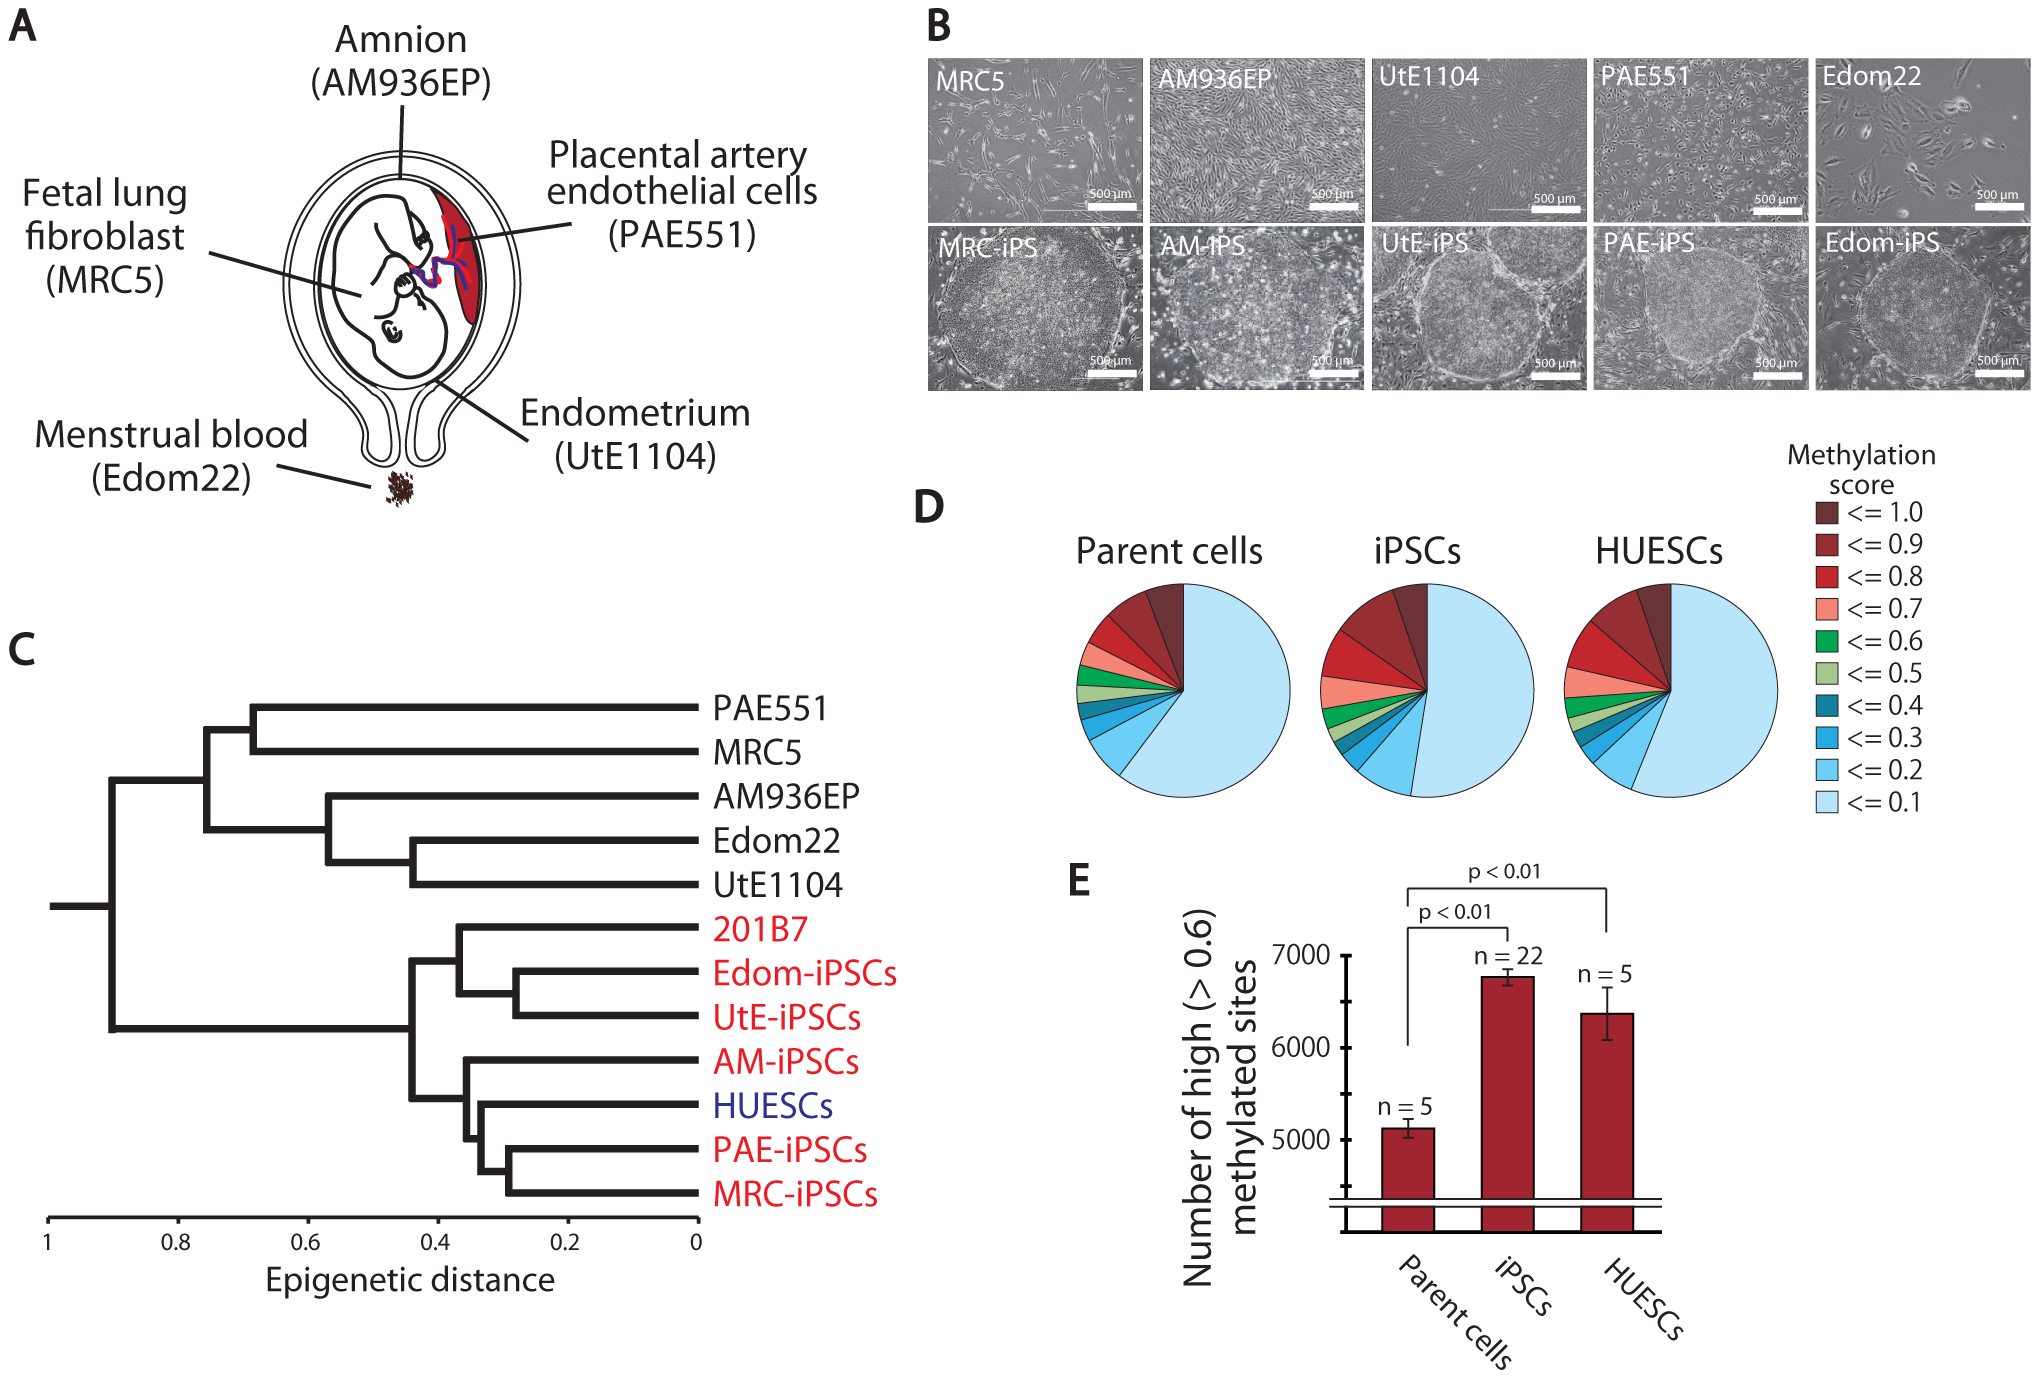 Pluripotent stem cells are significantly more hyper-methylated than their parent cells.